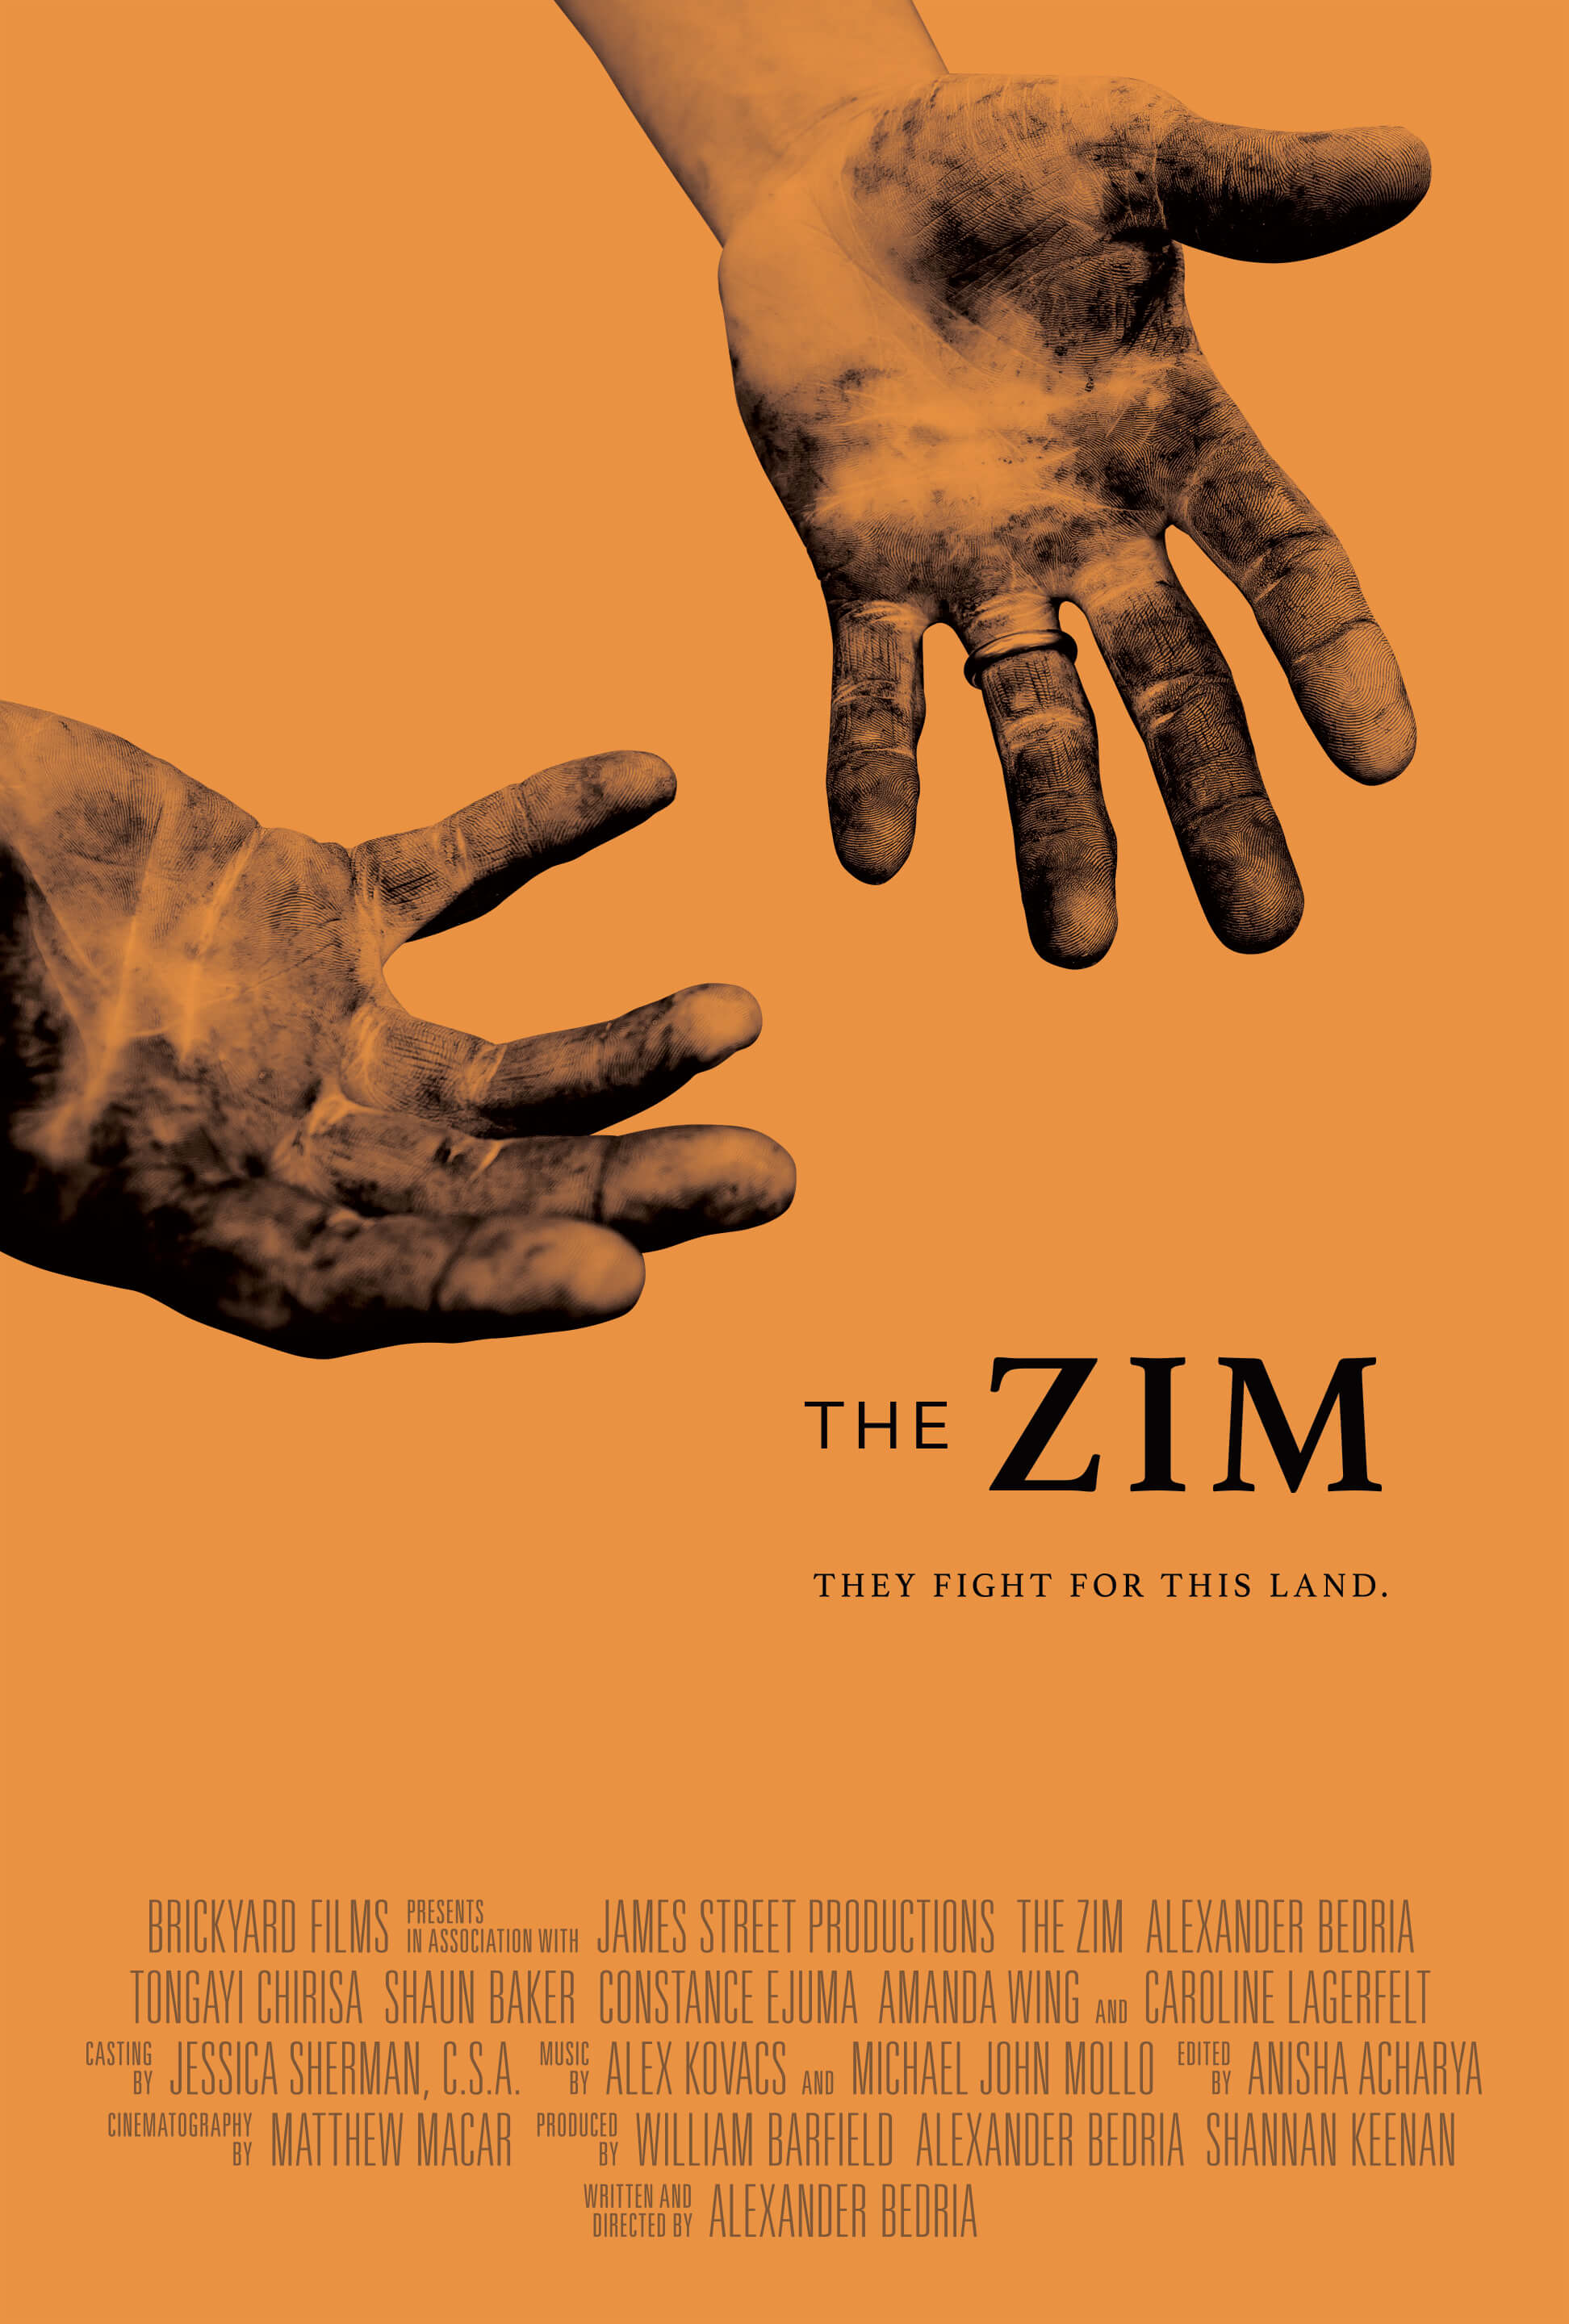 The Zim - Interview with Director Alexander Bedria